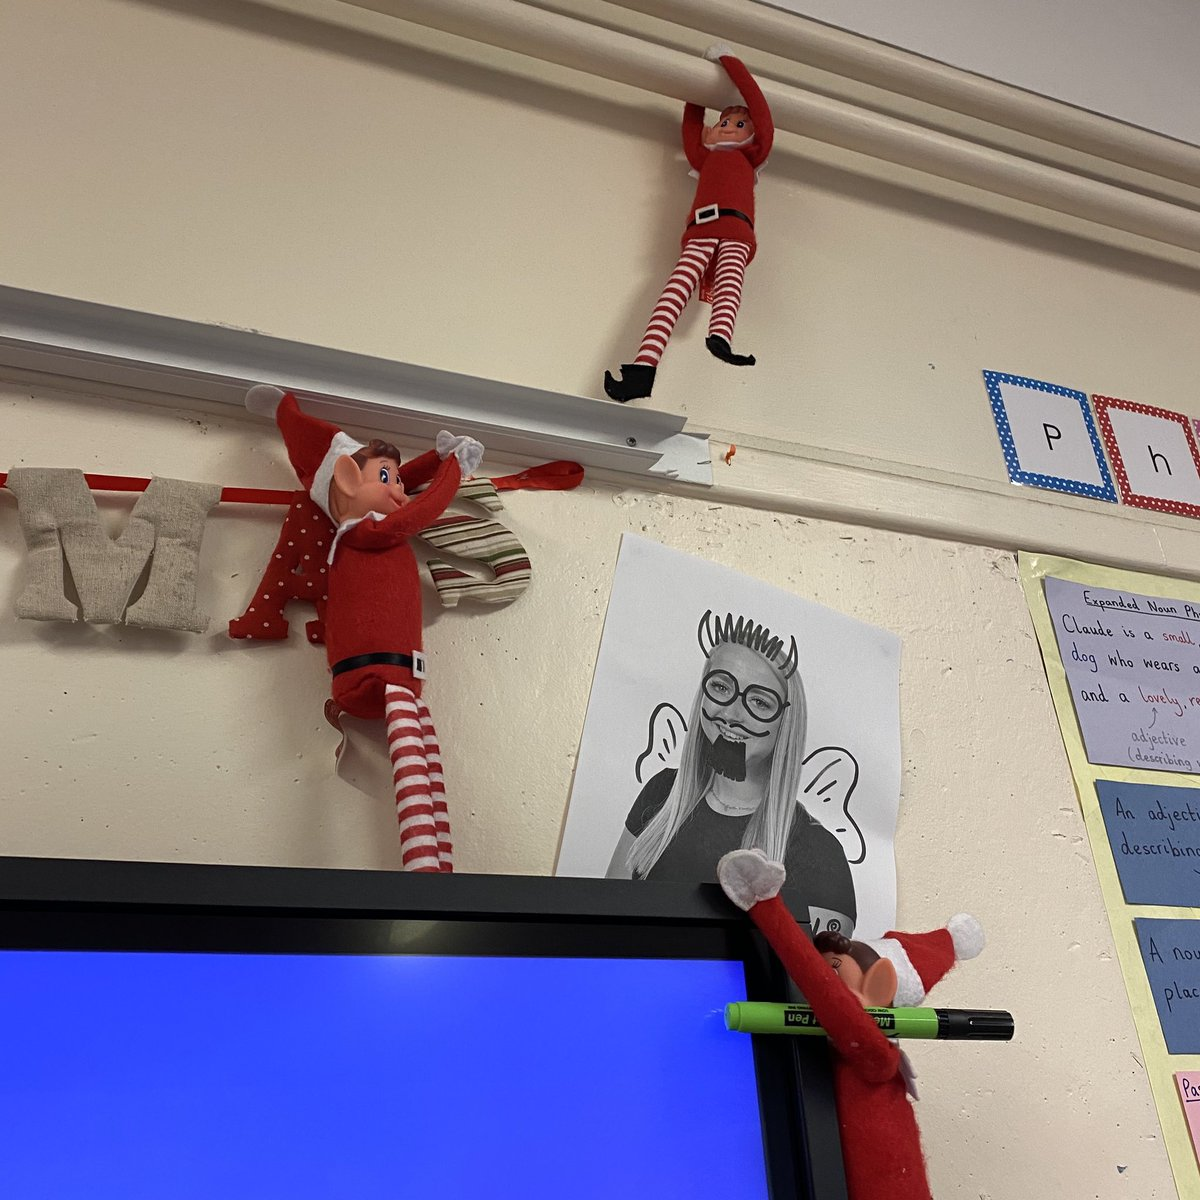 Badgers has a visit from those naughty elves this morning. Look what they did to poor Miss Lloyd! #elfontheshelf2020 #elfontheshelf https://t.co/5GPSLdpcQz